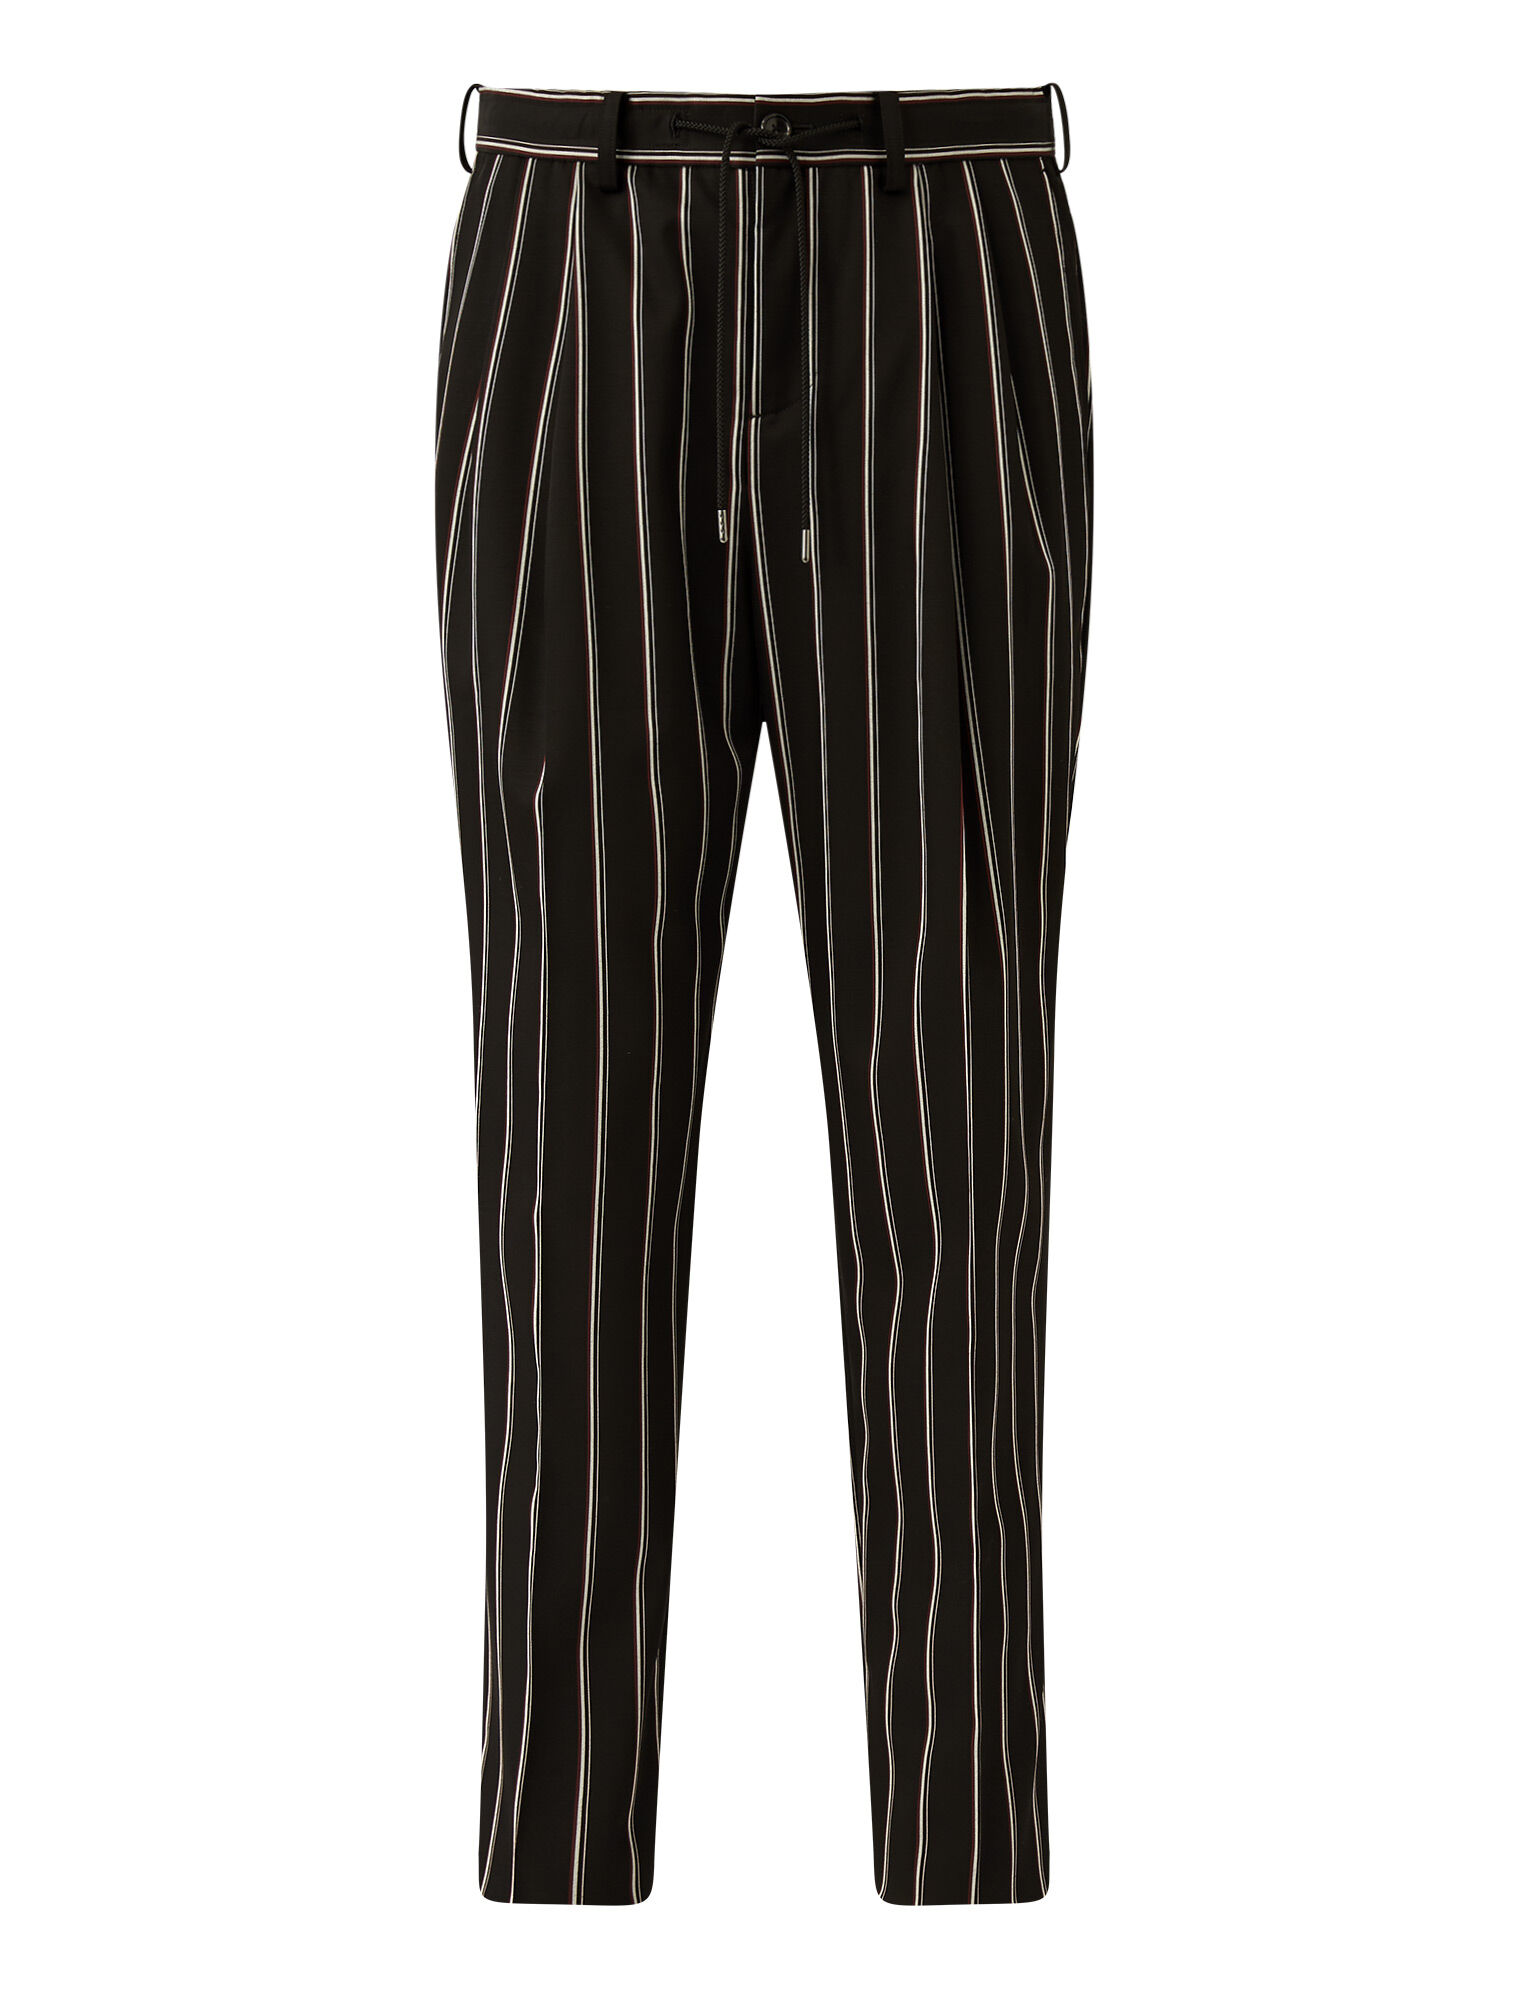 Joseph, Viscose Wool Stripe Trousers, in Black